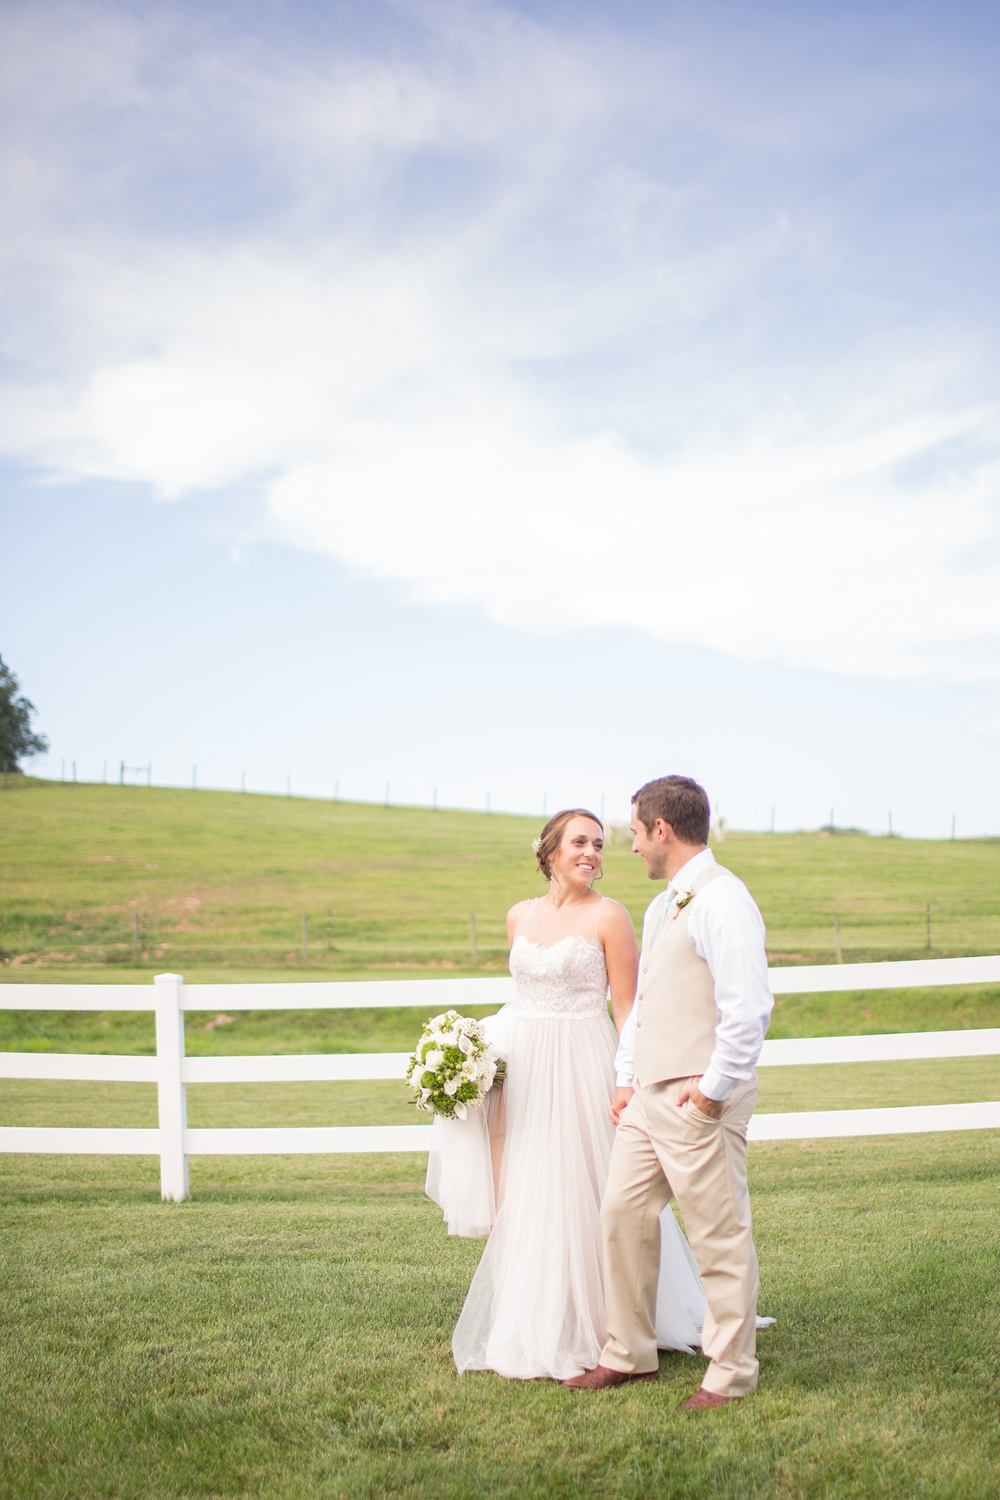 Herndon 5-Bride & Groom Portraits-806_anna grace photography baltimore maryland wedding photographer pond view farm photo.jpg